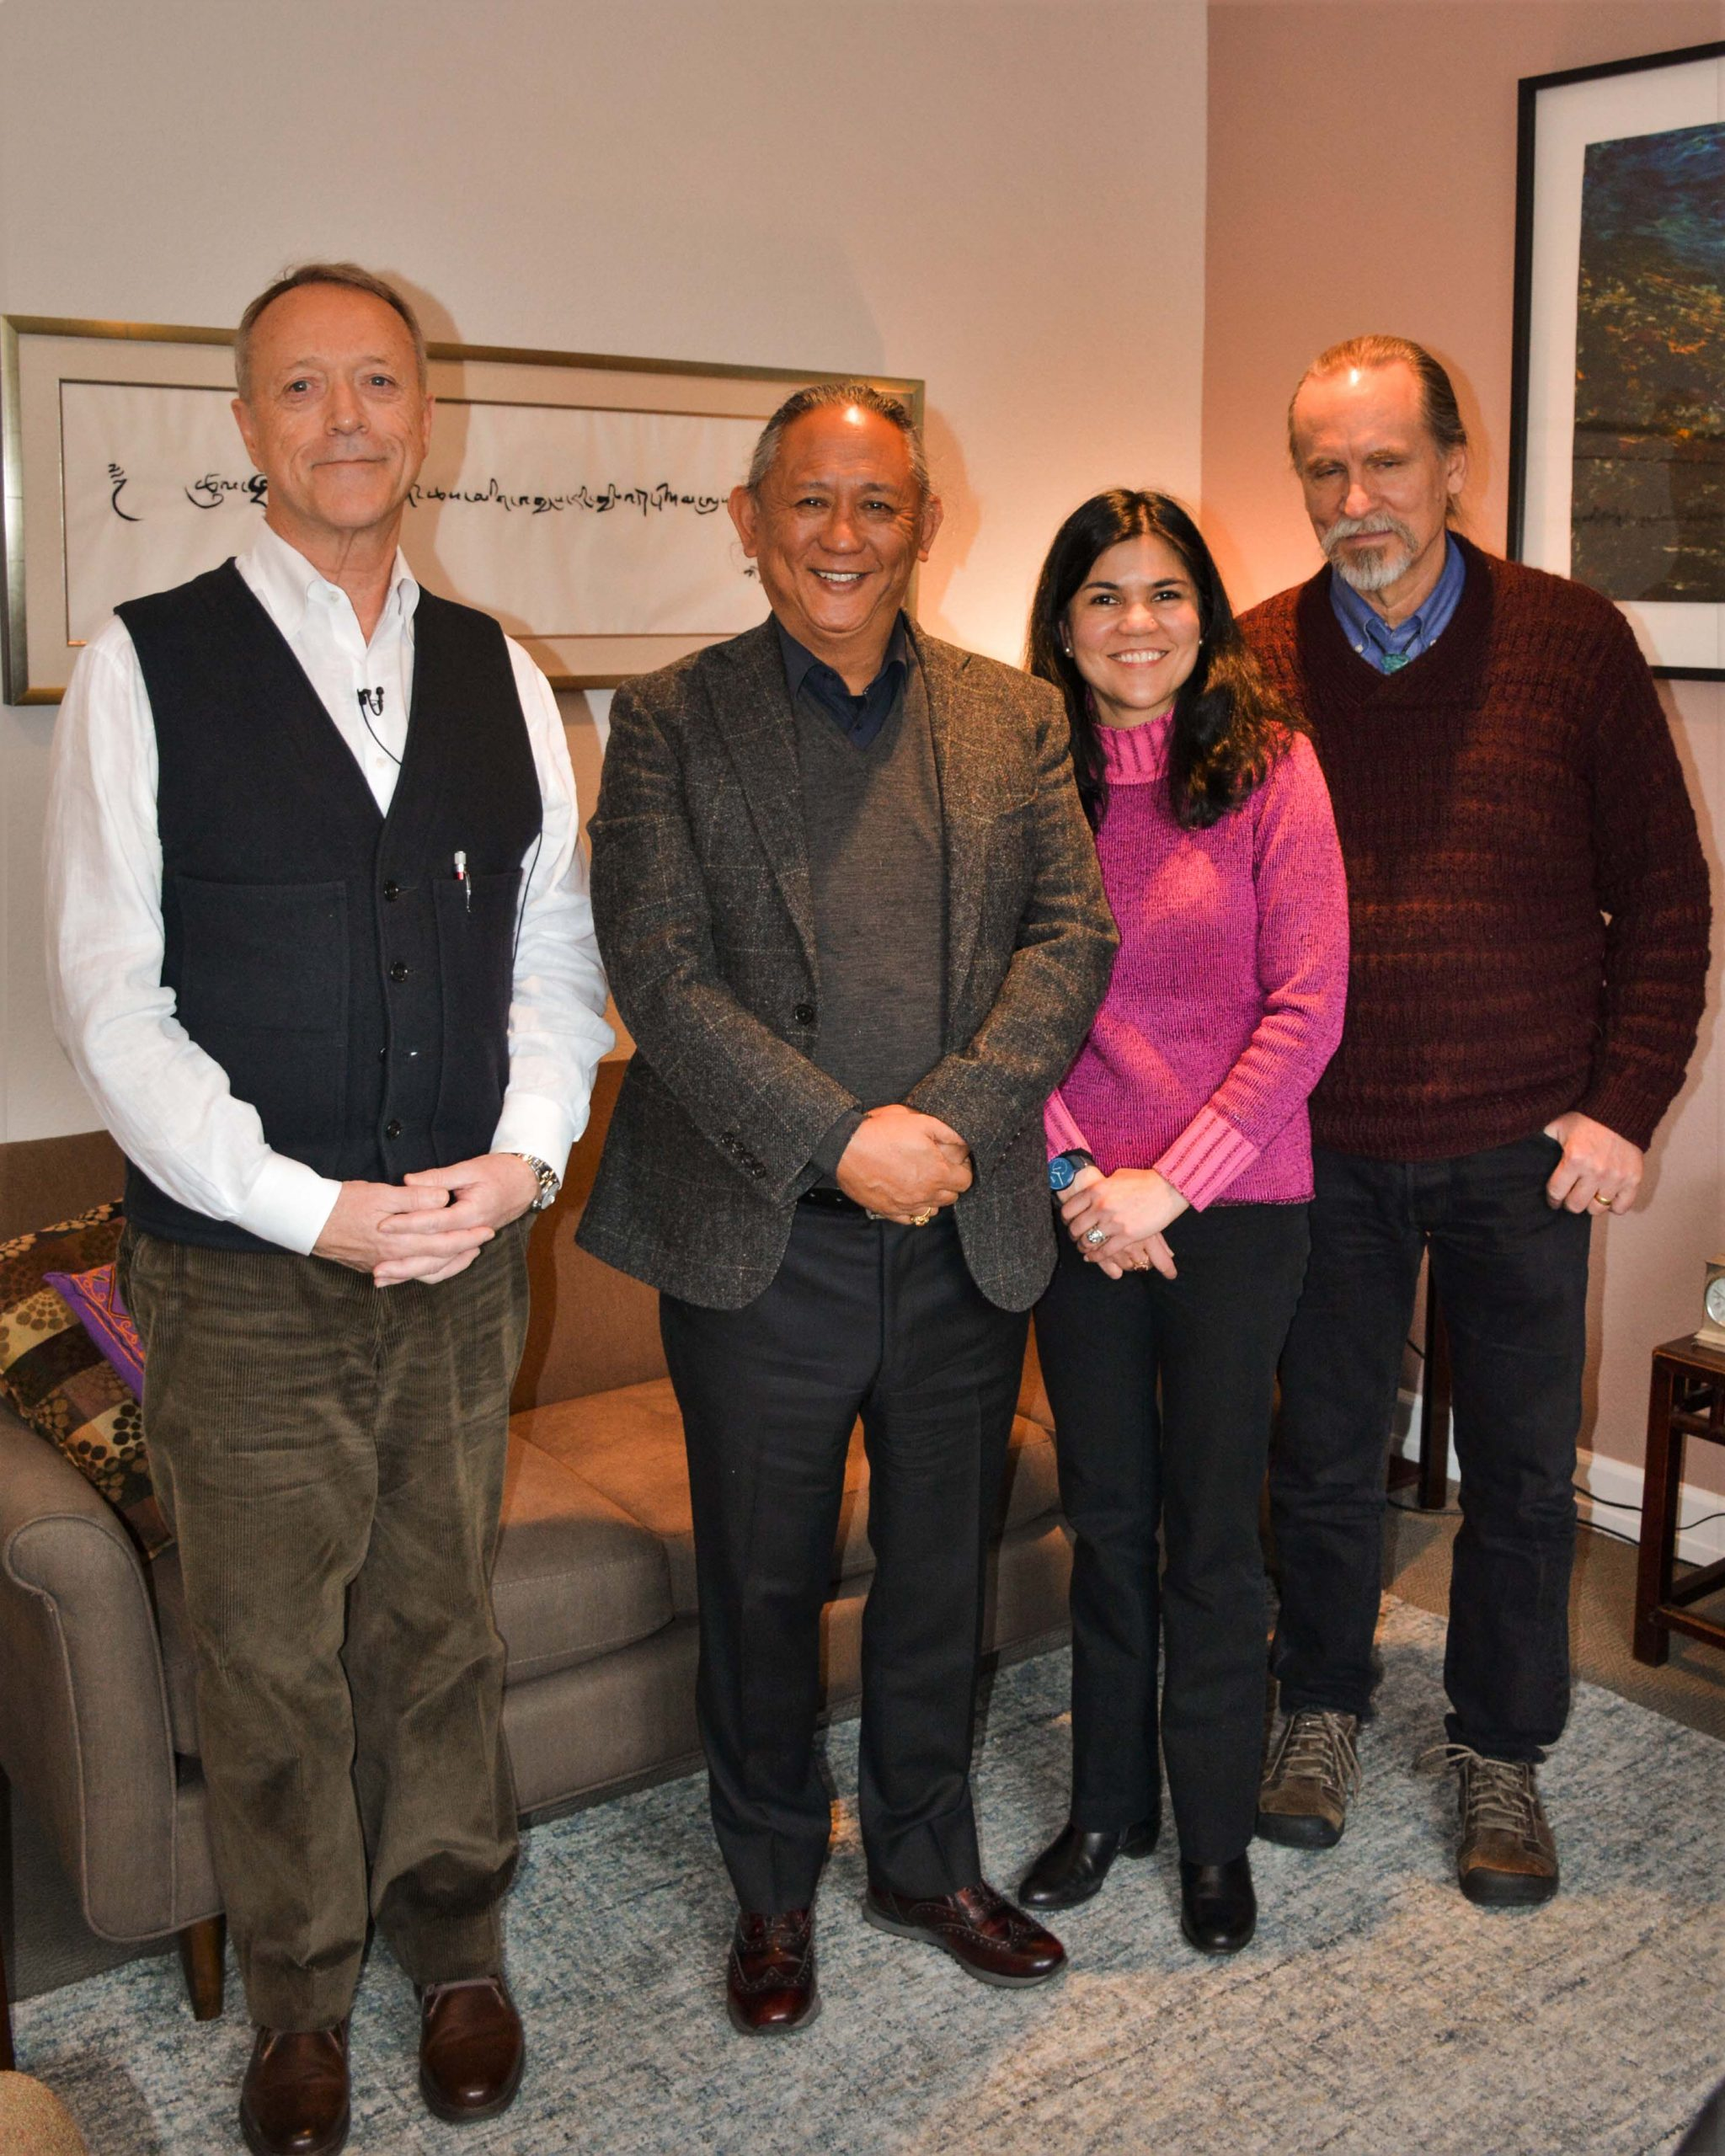 Chuck Knapp (previous Director and marketing administrator- WCS senior clinician) Dzigar Kongtrul Rinpoche, Polly Banerjee- Gallagher (Director of WCS) and Jack Gipple (Clinical Services Manager)